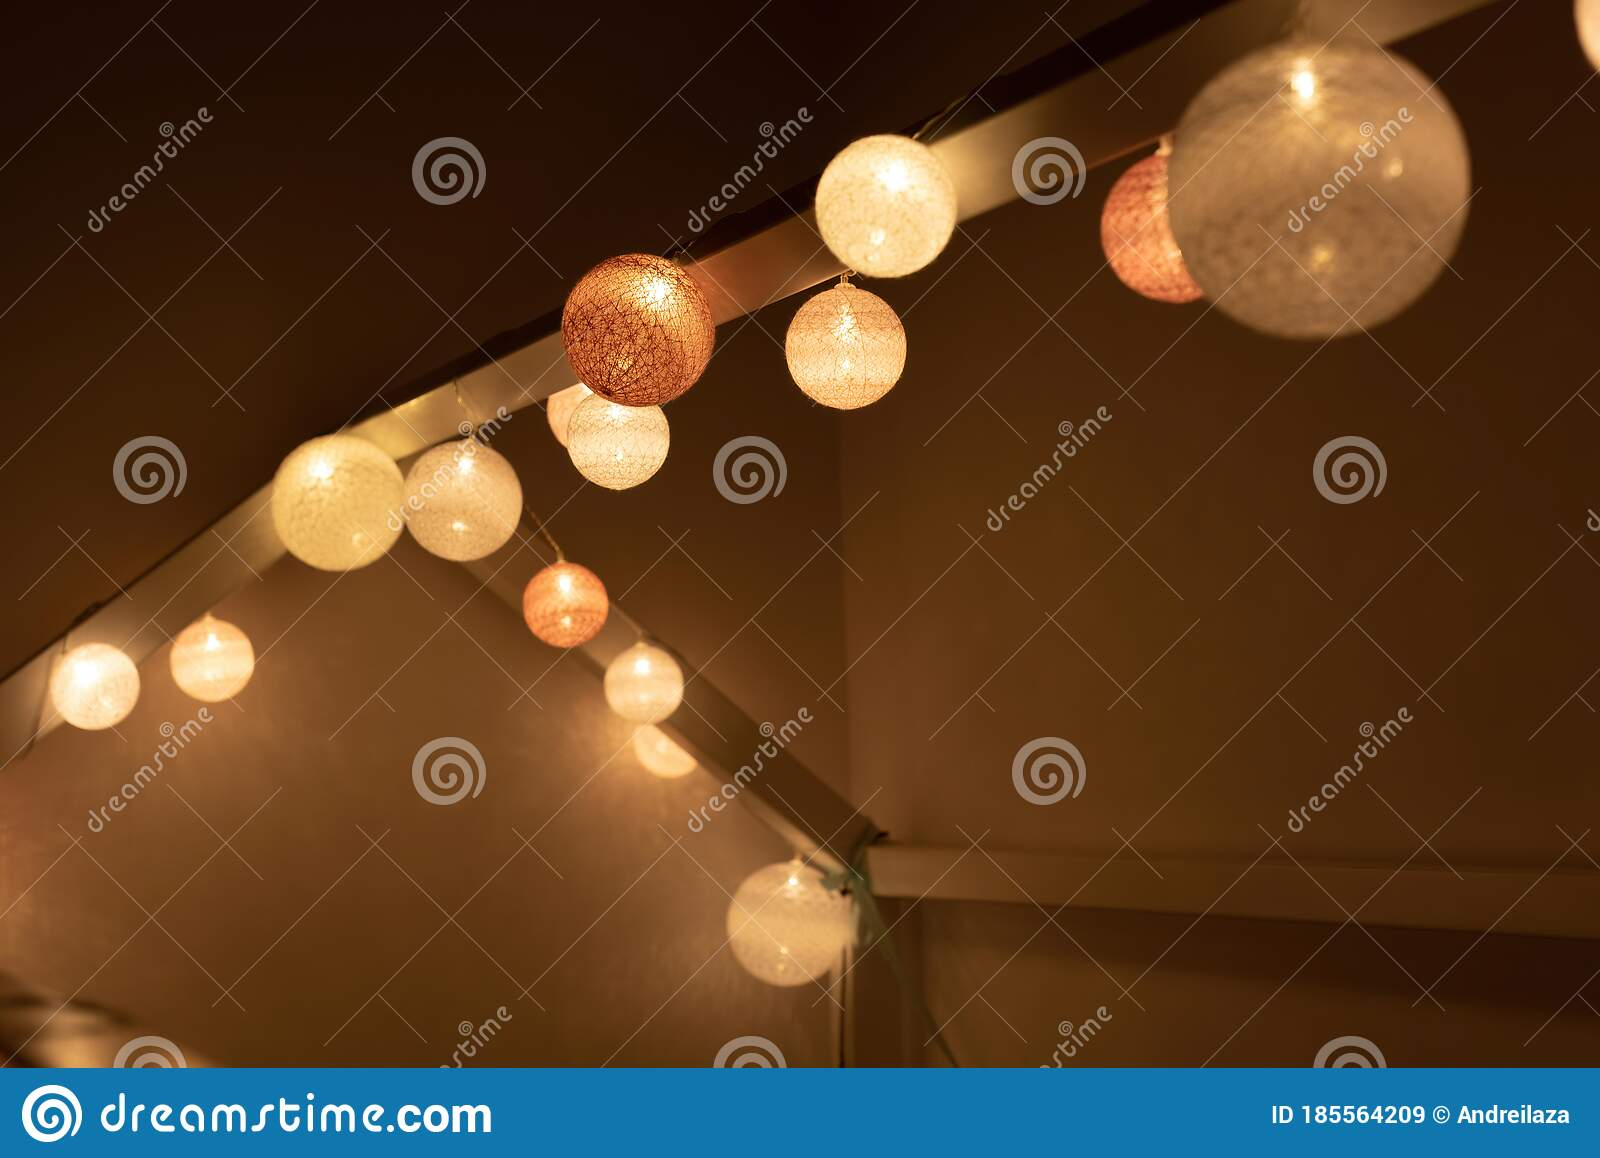 Bed Canopy Decorated With Lights In Montessori Room Stock Image Image Of Canopy Design 185564209